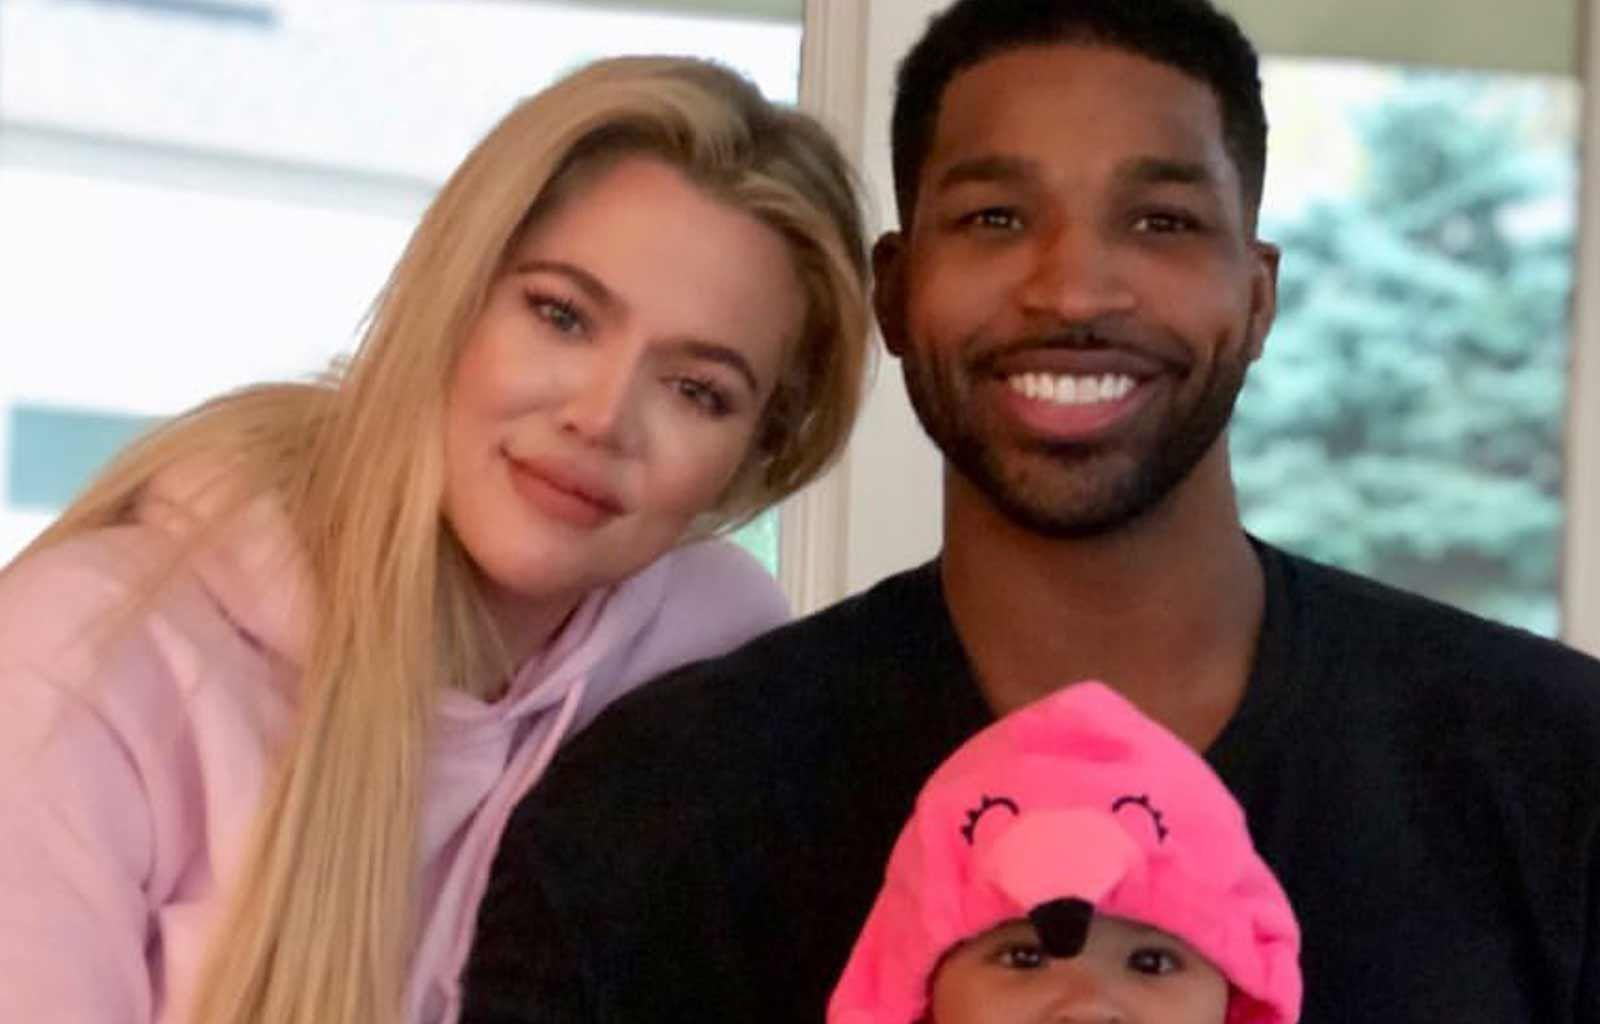 KUWK: Wendy Williams Criticizes Khloe Kardashian After She Considers Having A Second Child With Ex Tristan Thompson!